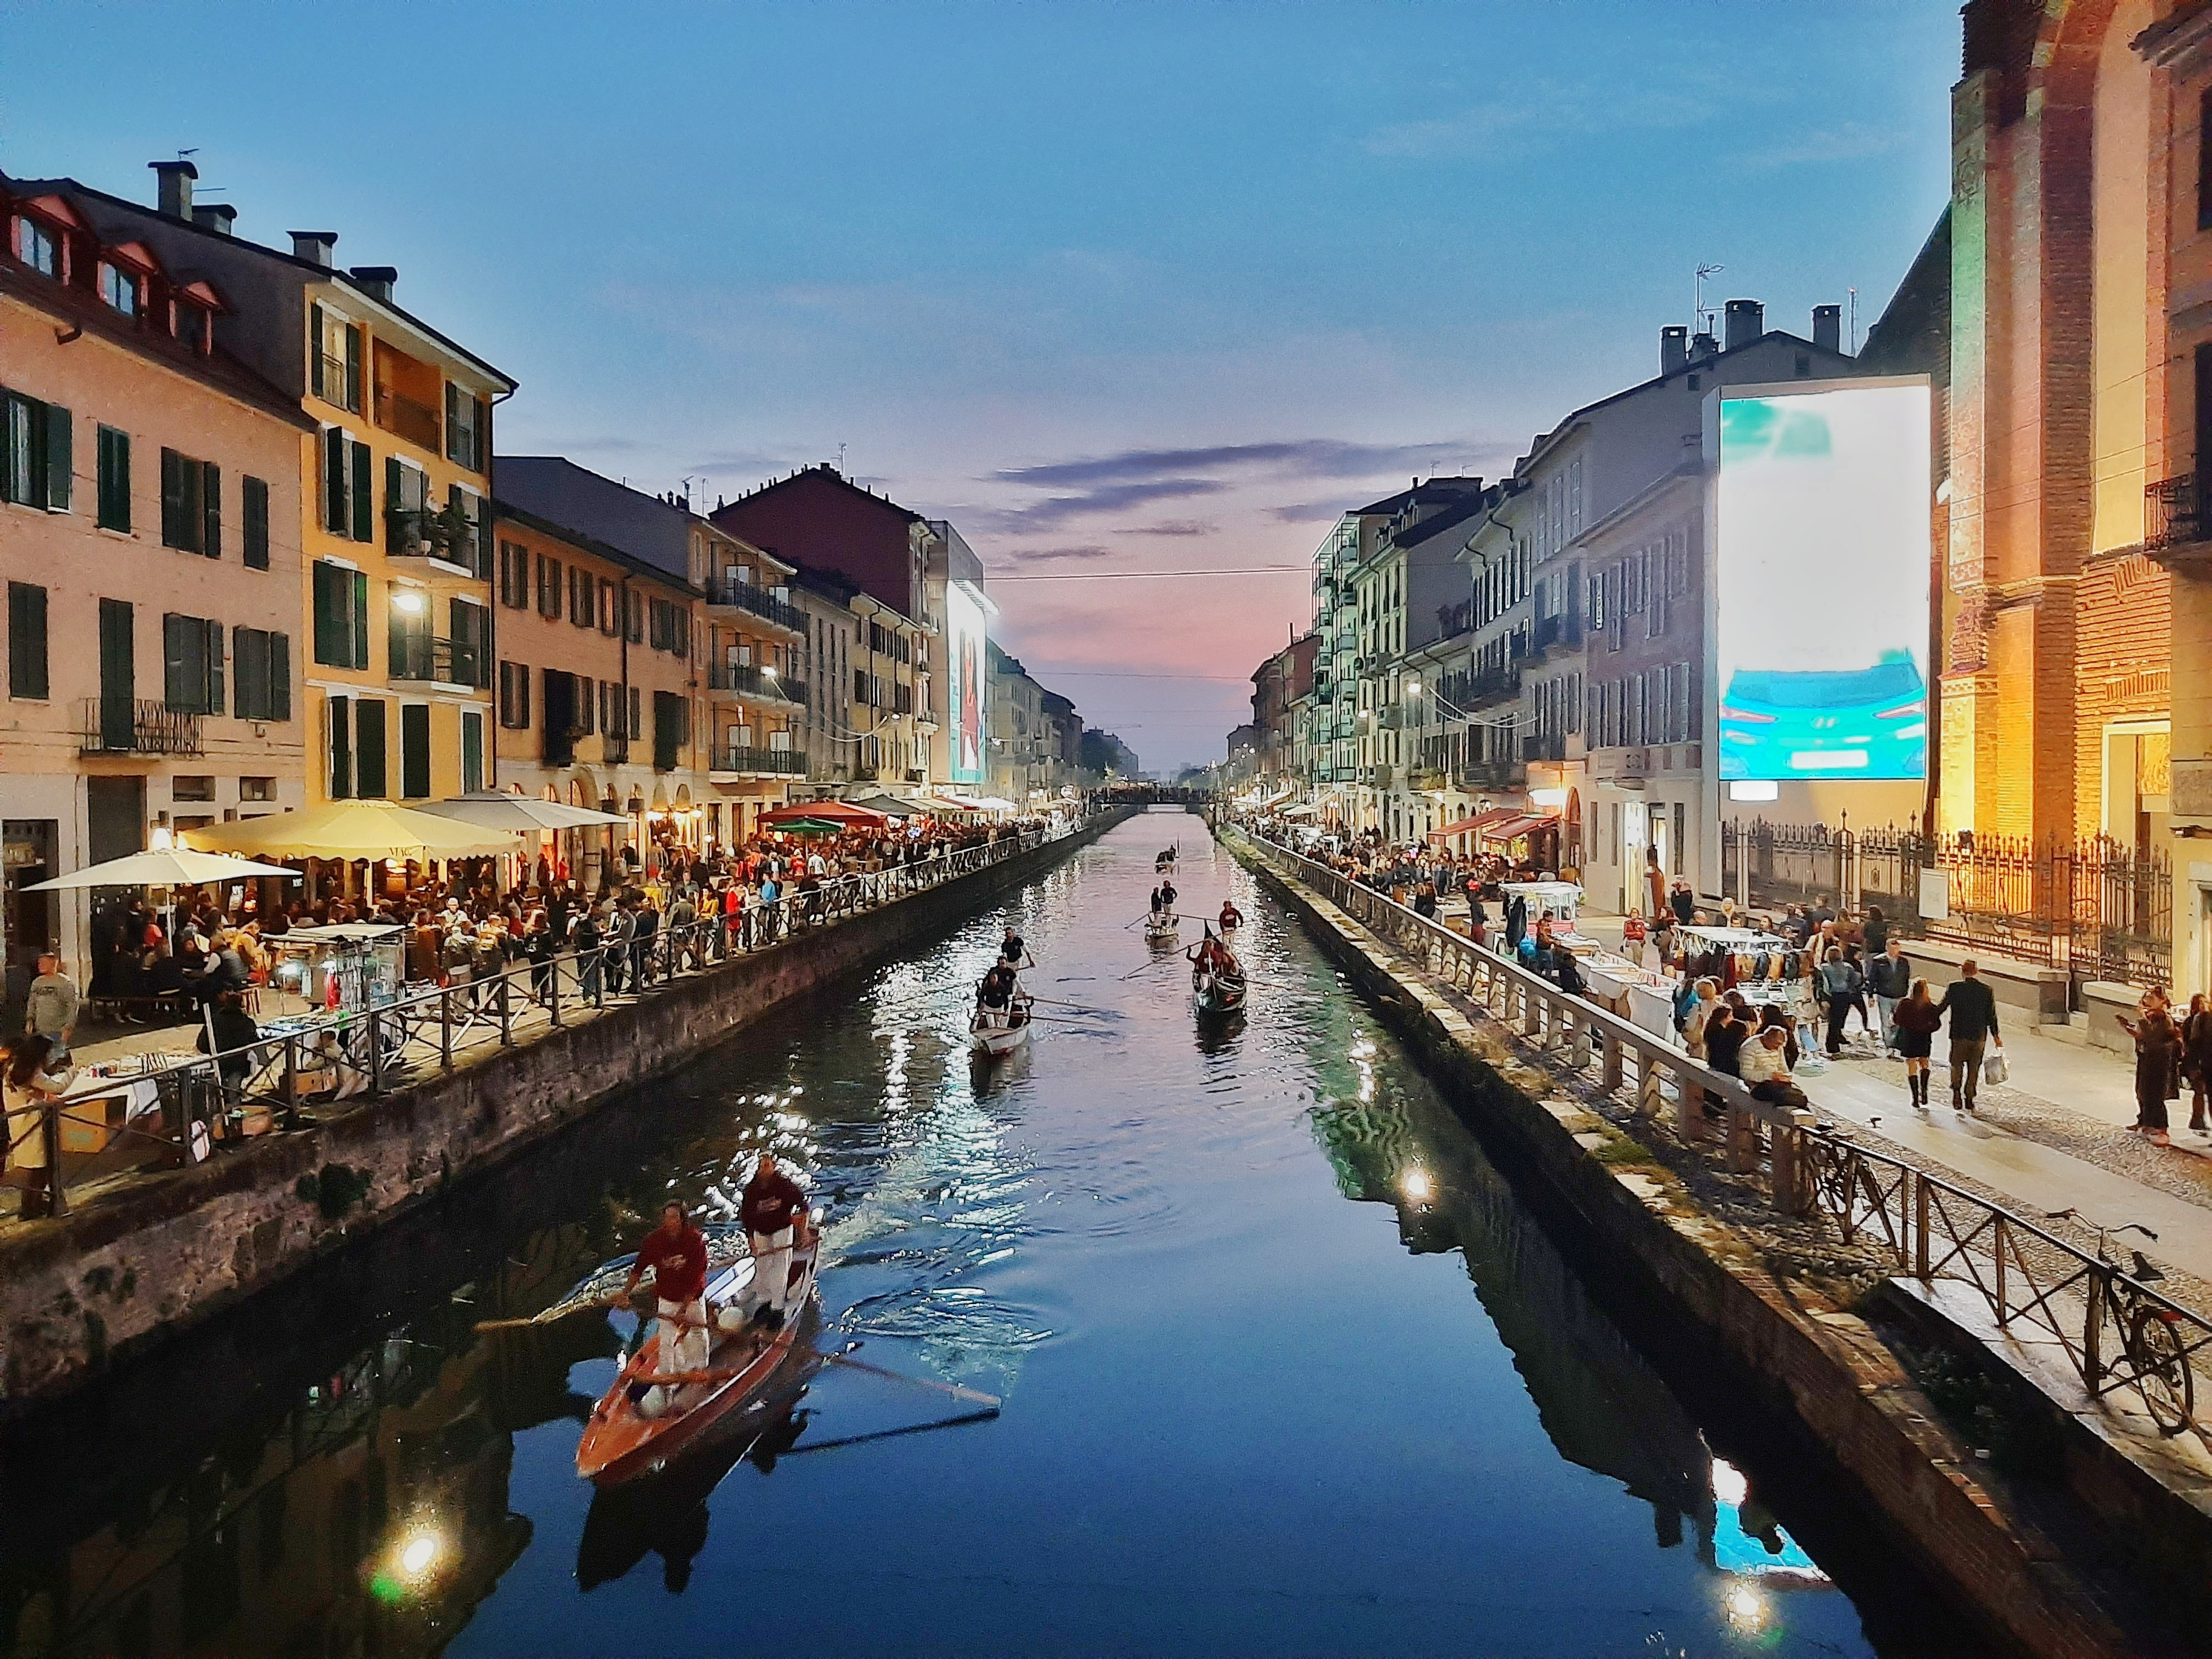 A picture of a river in Milan at dusk.